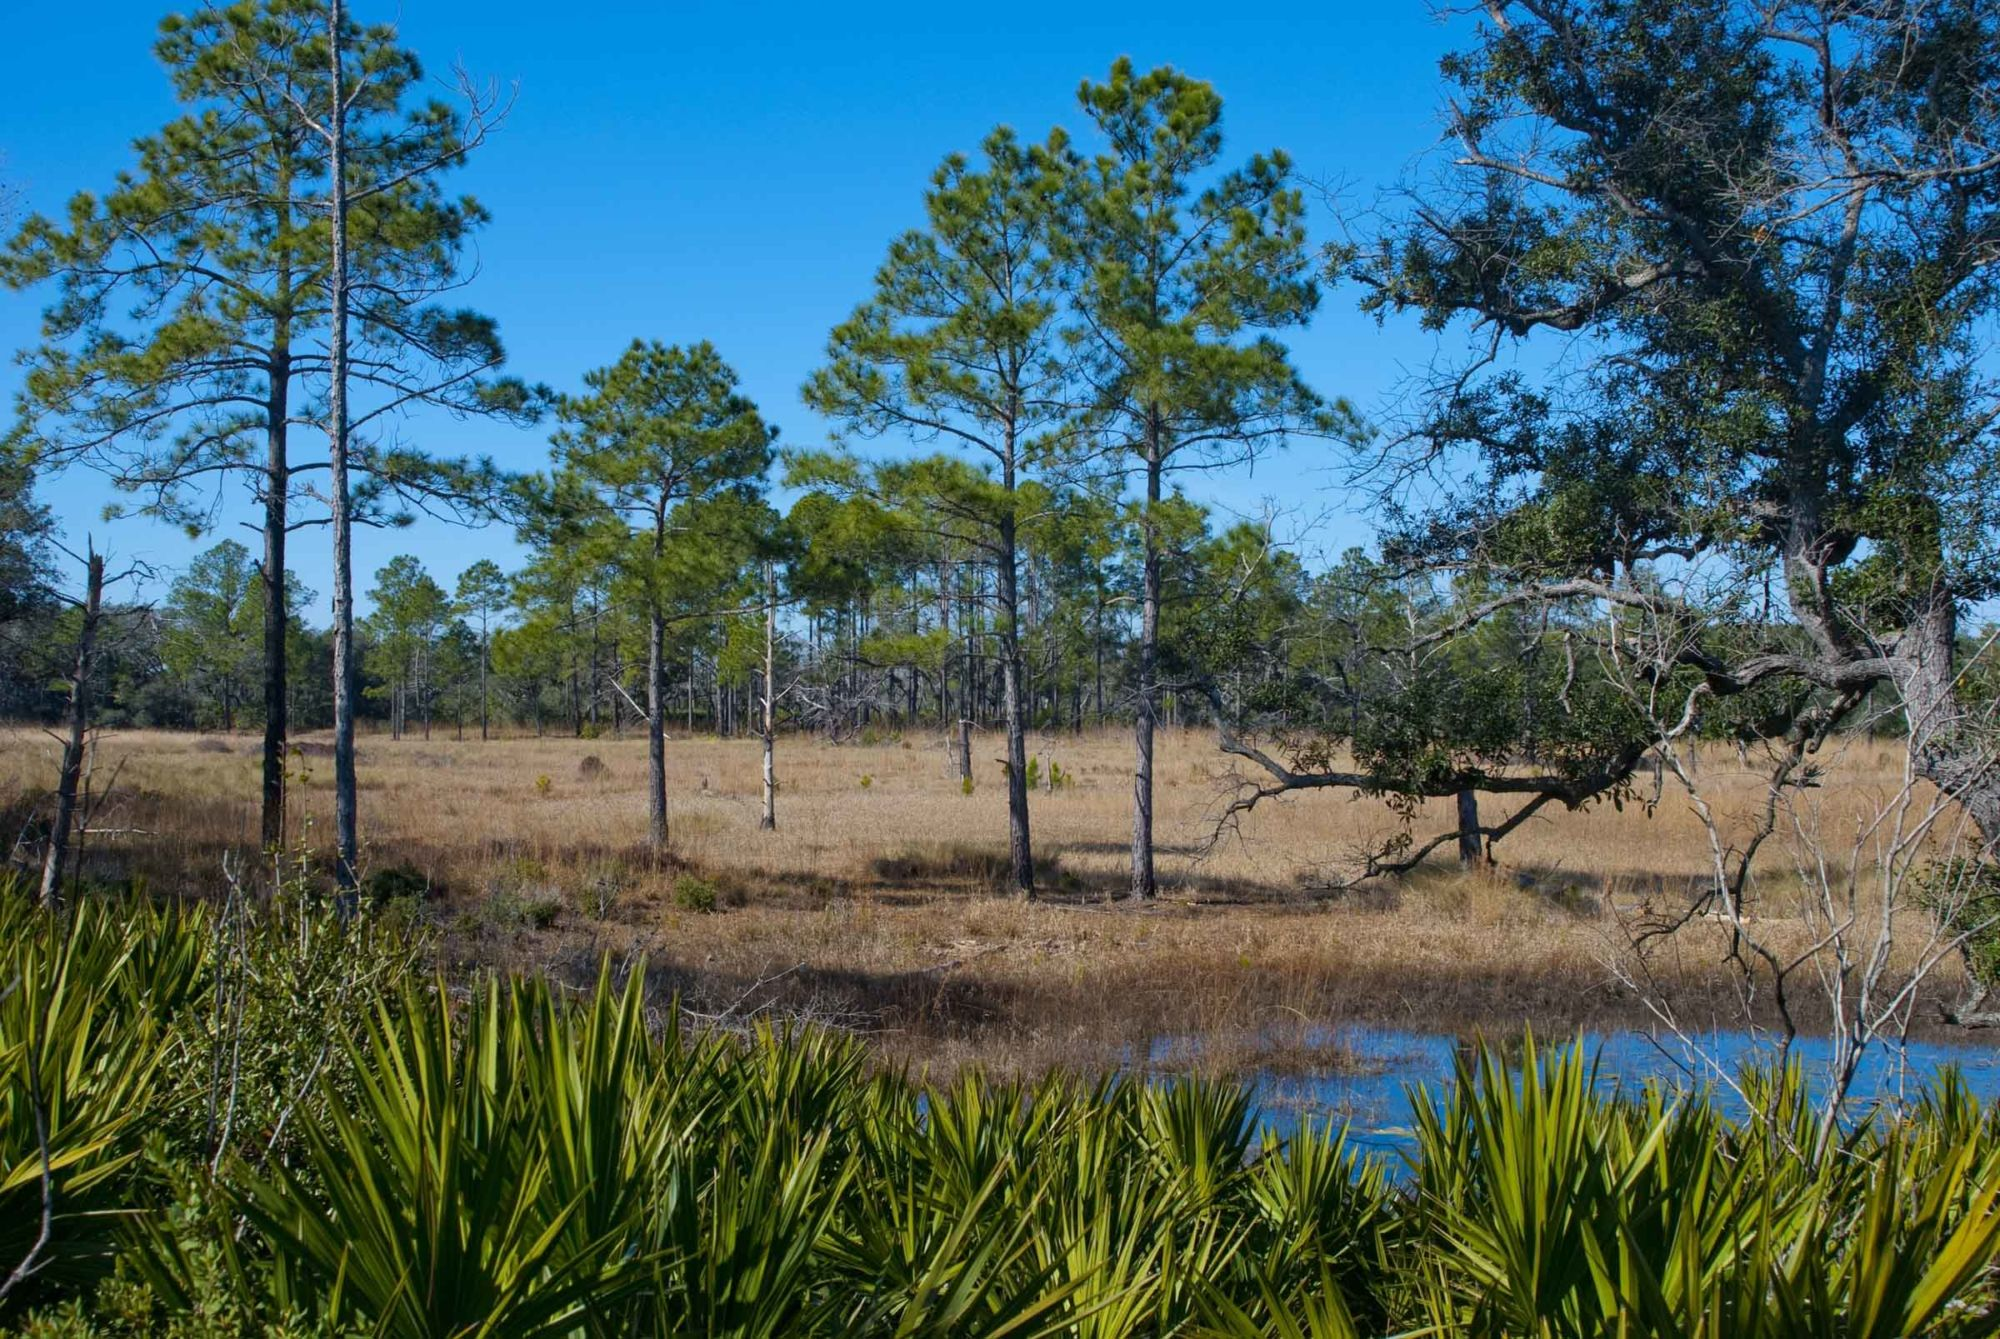 Pine scrub in Ocala National Forest